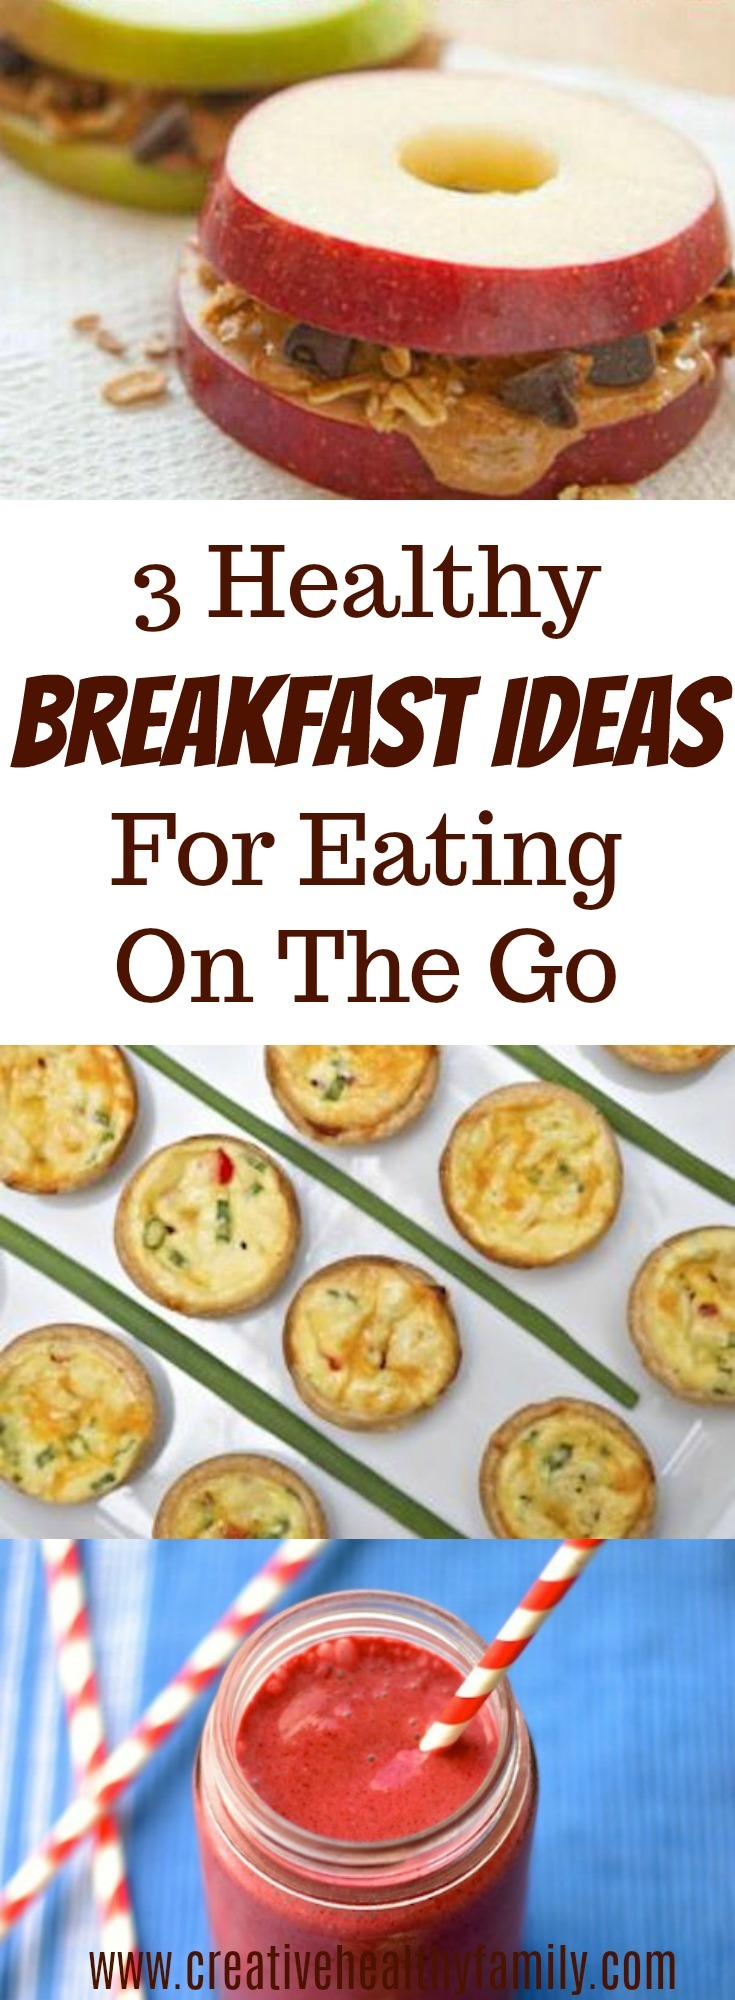 3 healthy breakfast ideas for eating on the go